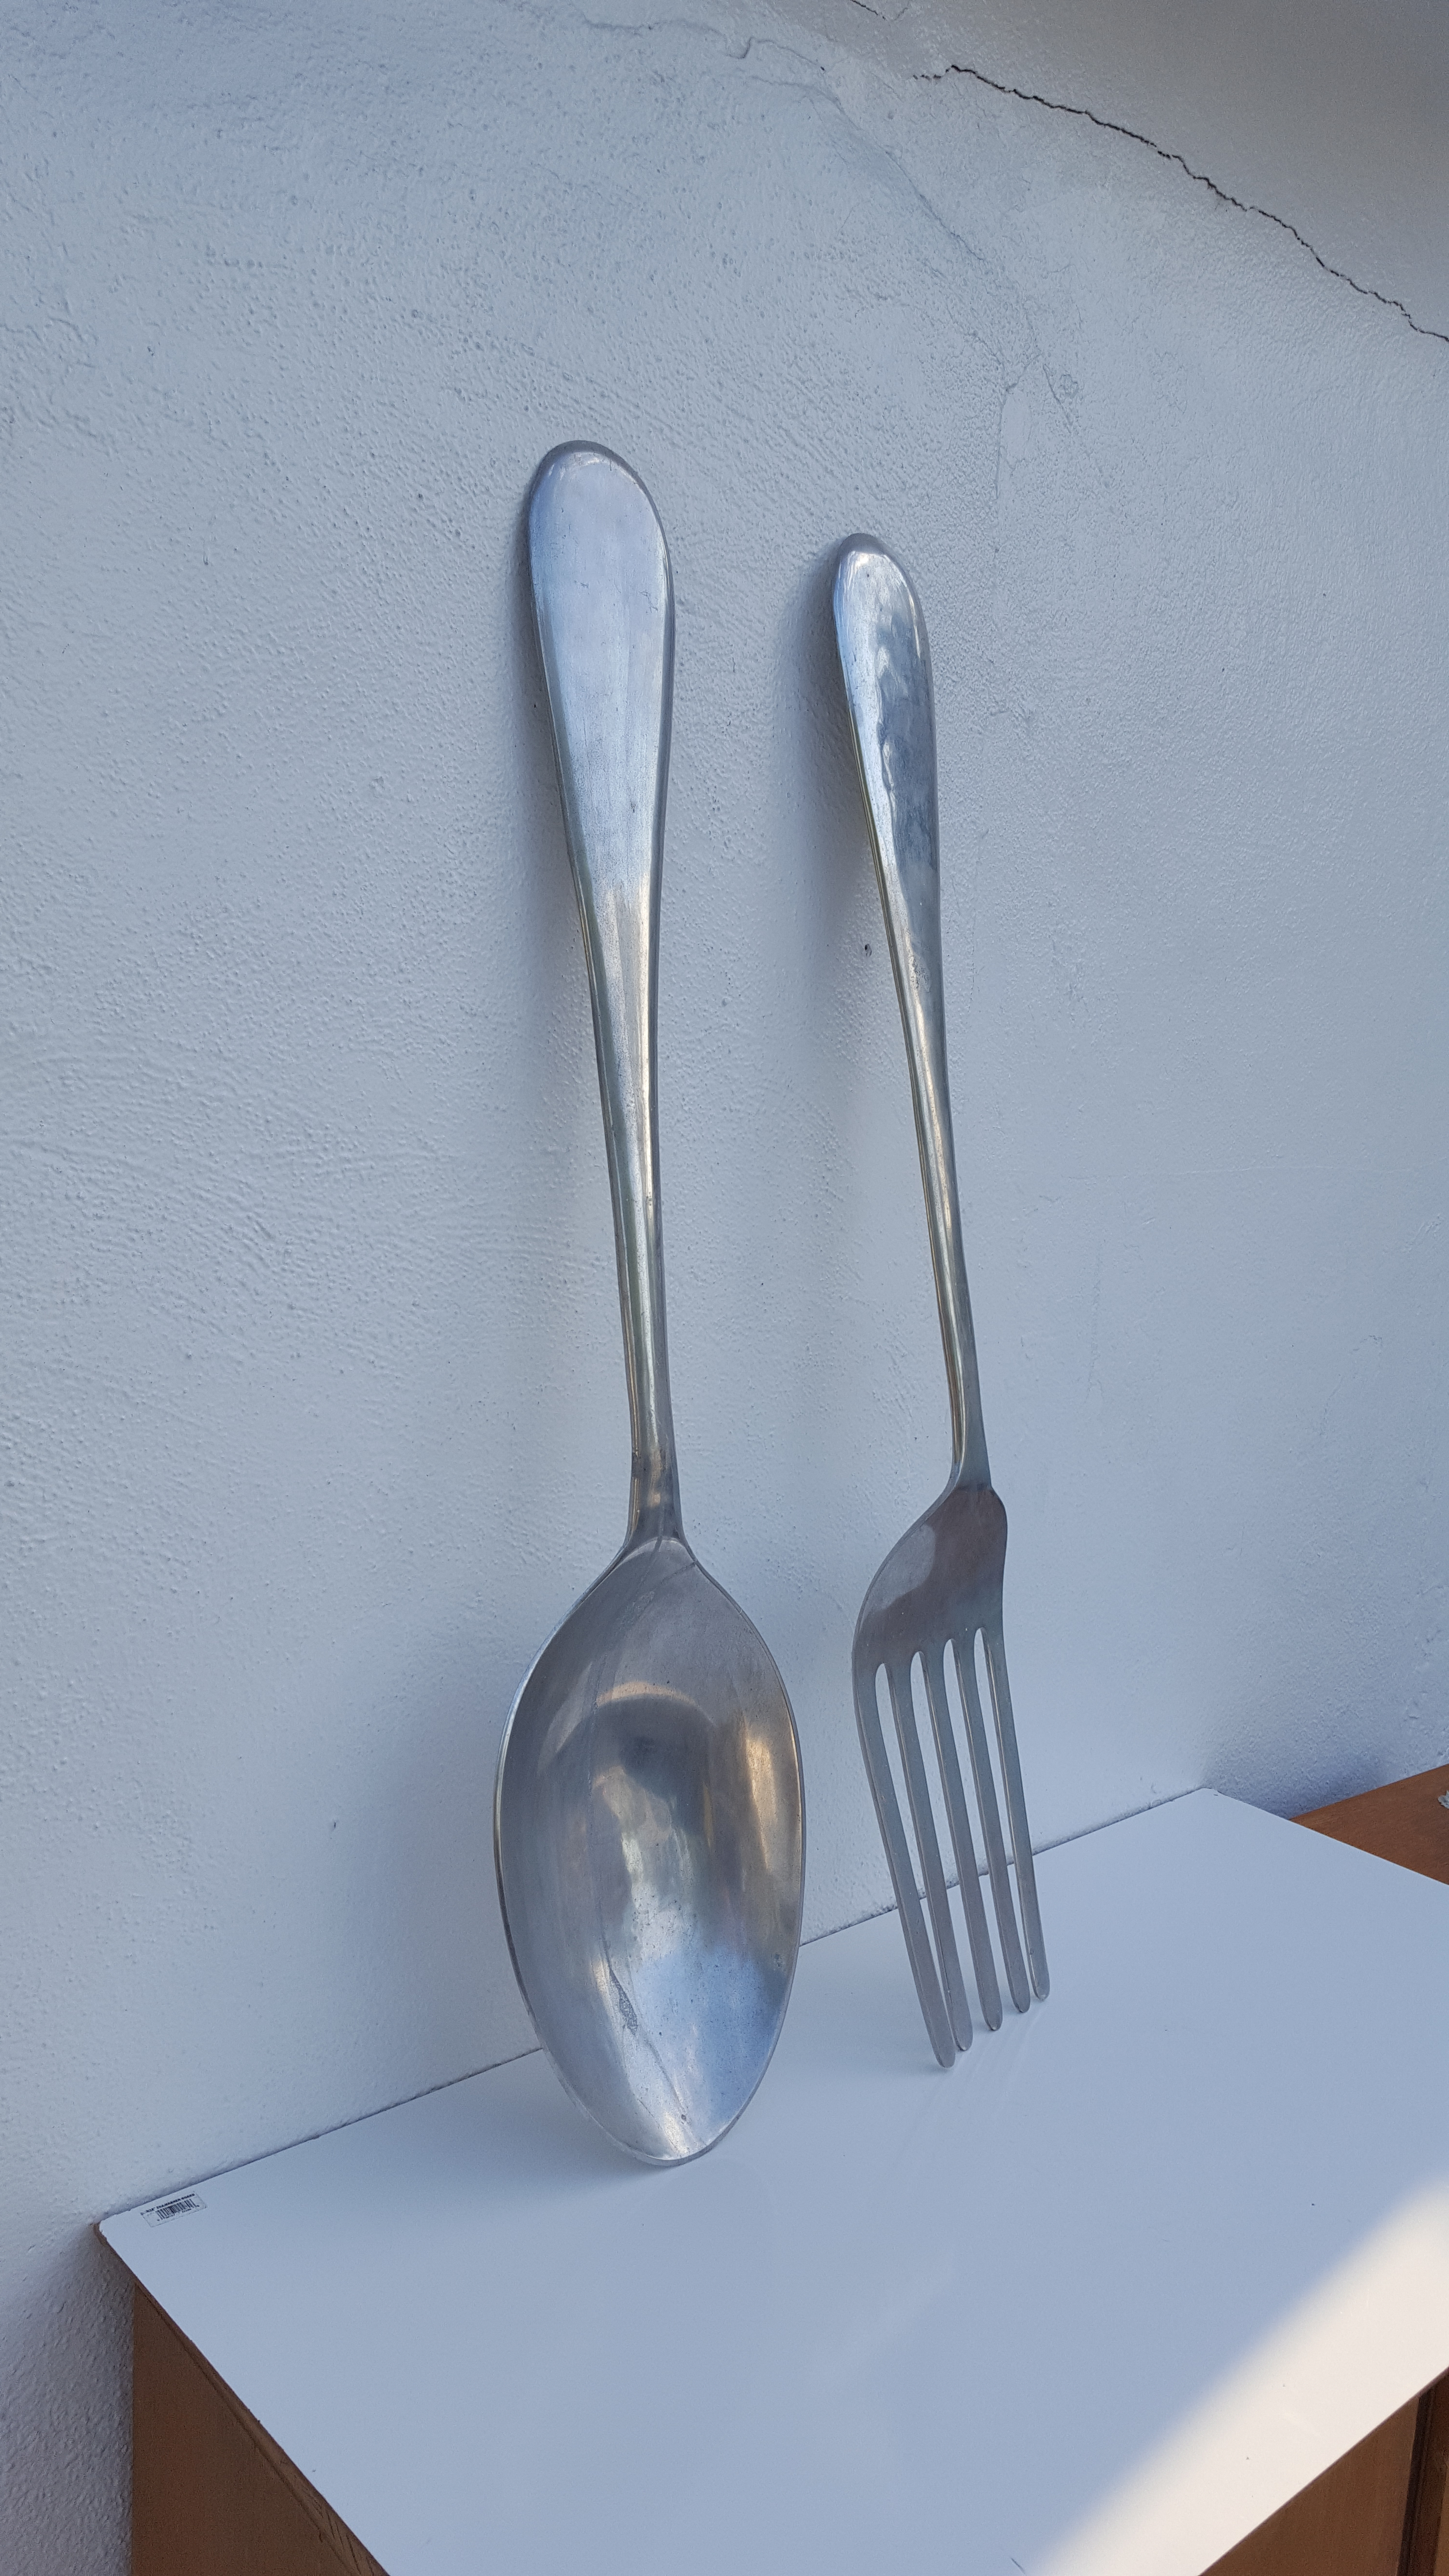 Oversized Curtis Jere Style Fork And Spoon Wall Art Sculptures a